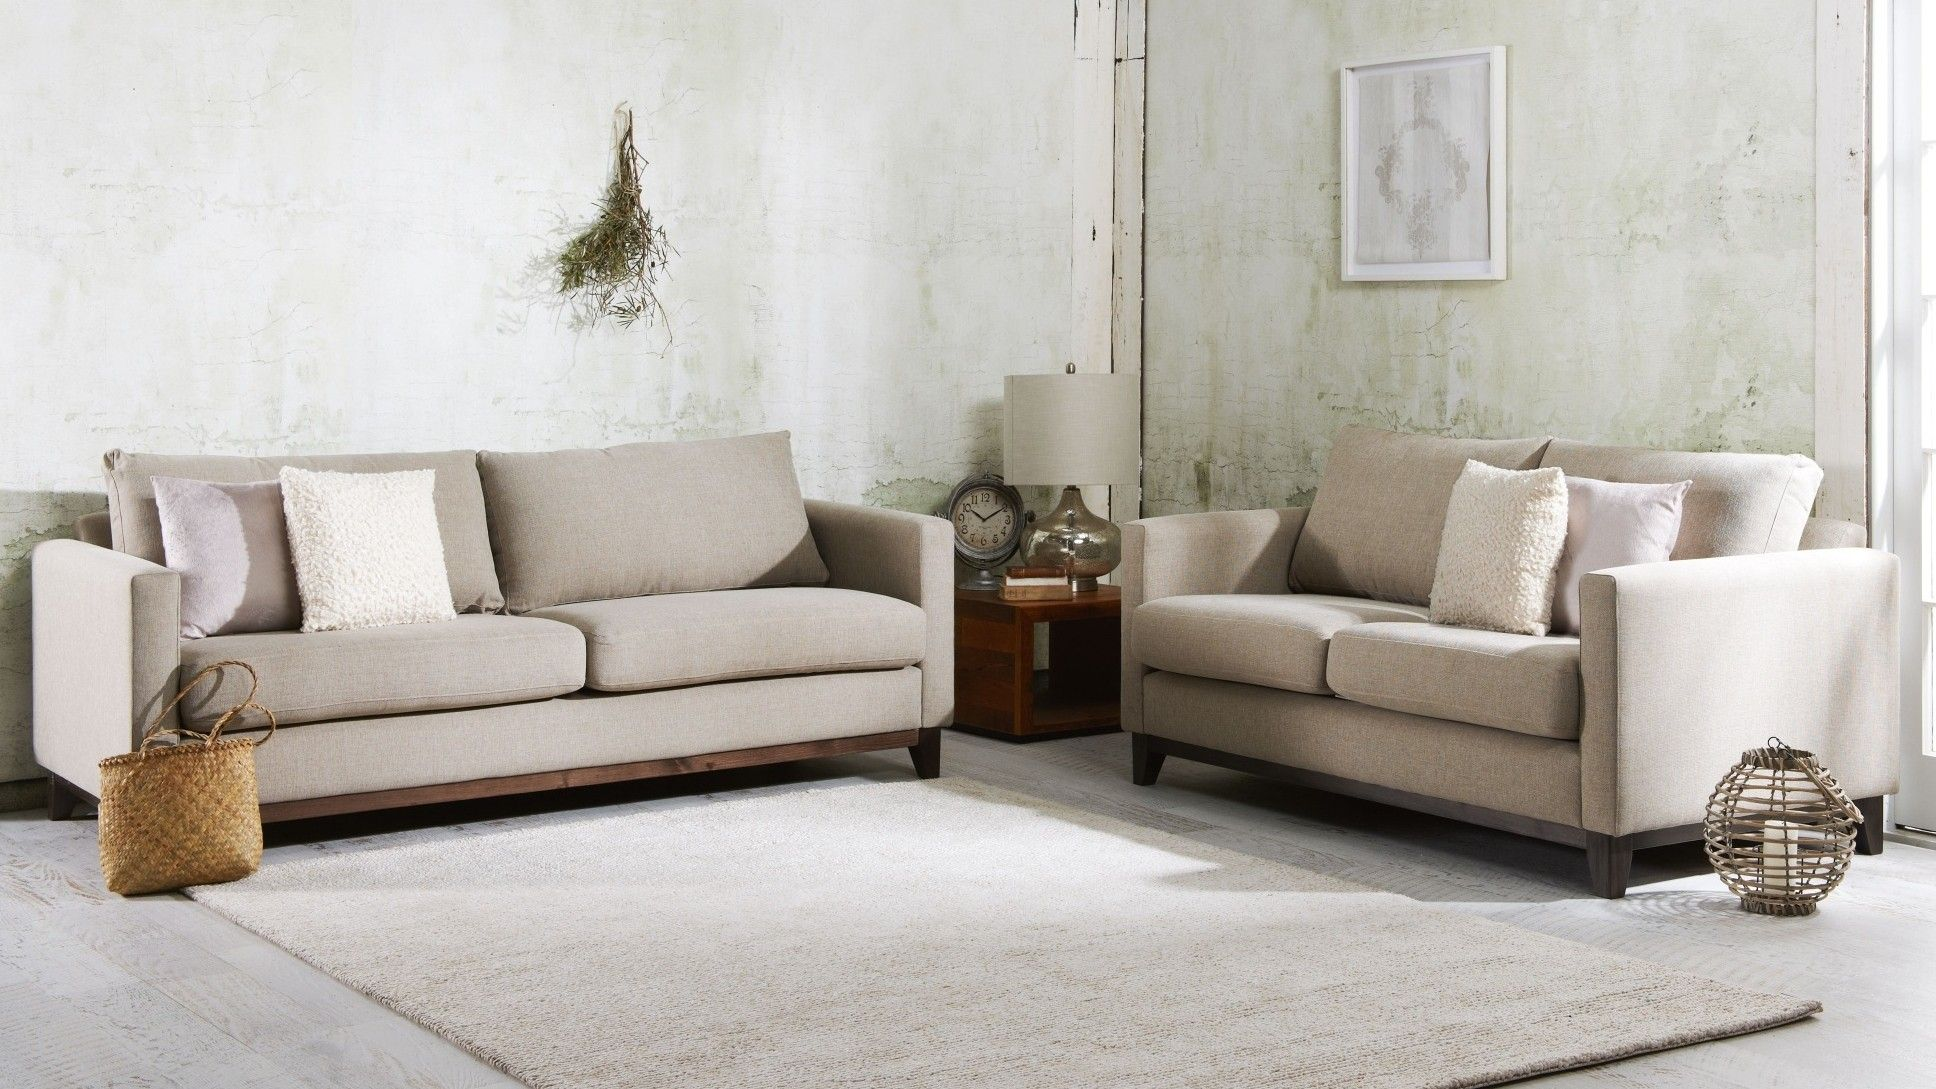 cooper sofa harvey norman 1005c contemporary black and white leather sectional 3 seater fabric house living room